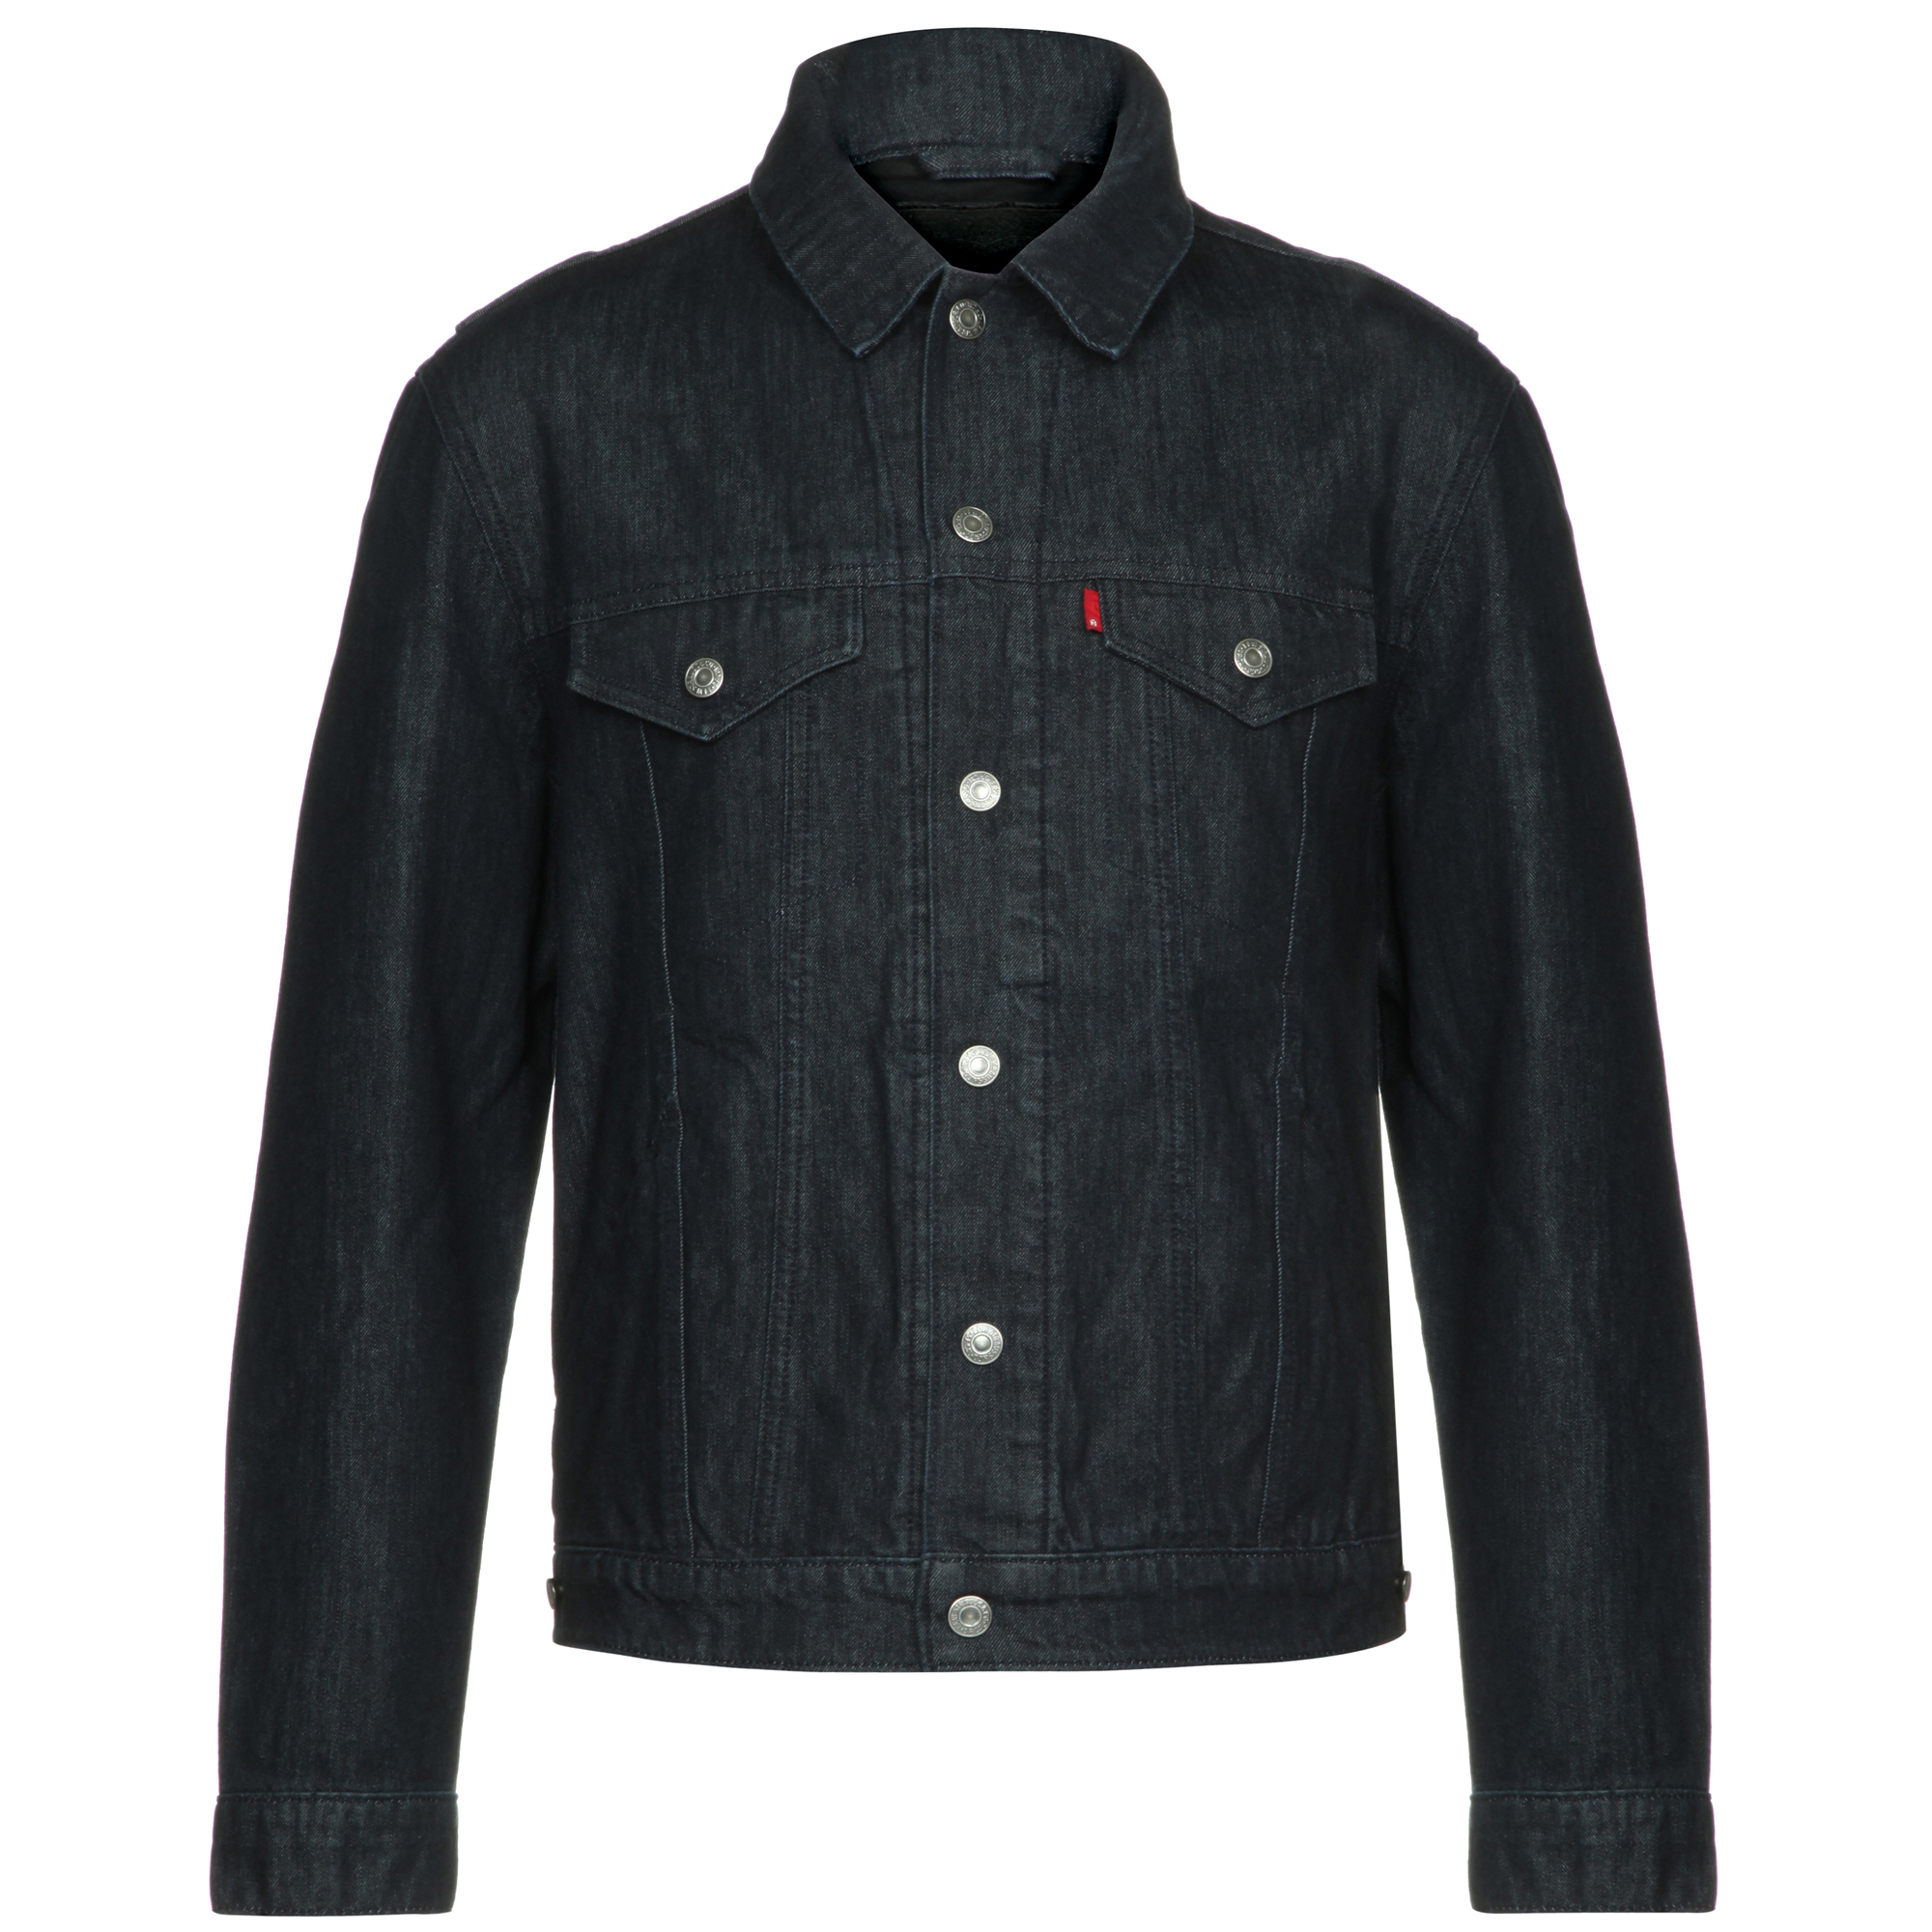 Commuter Levis | Levis Commuter Jacket | Commuter Clothing